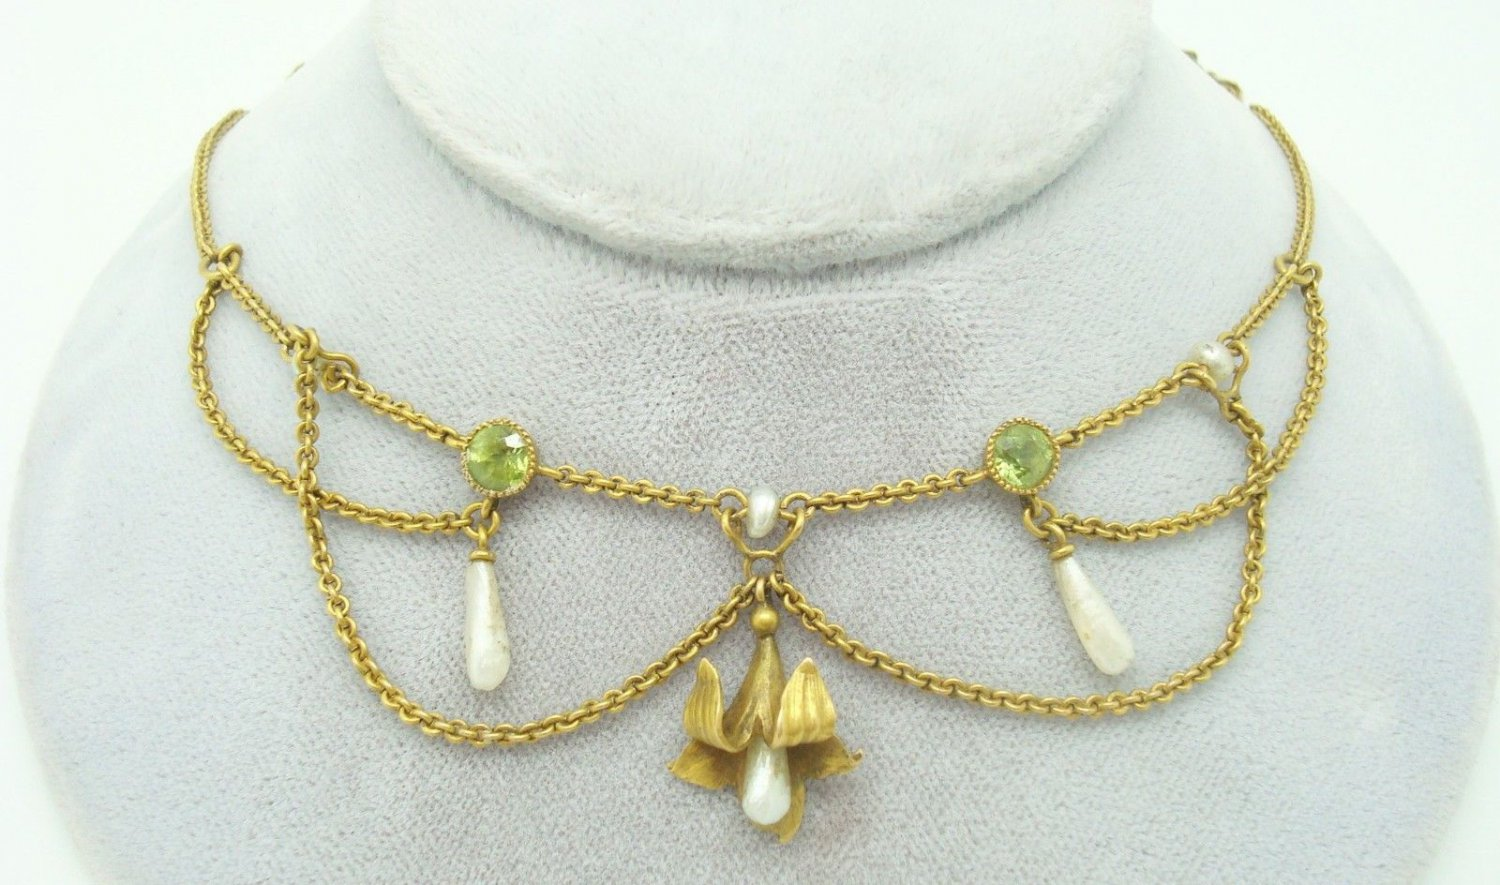 10K Gold Festoon Necklace with Peridots and Pearls (#2203)